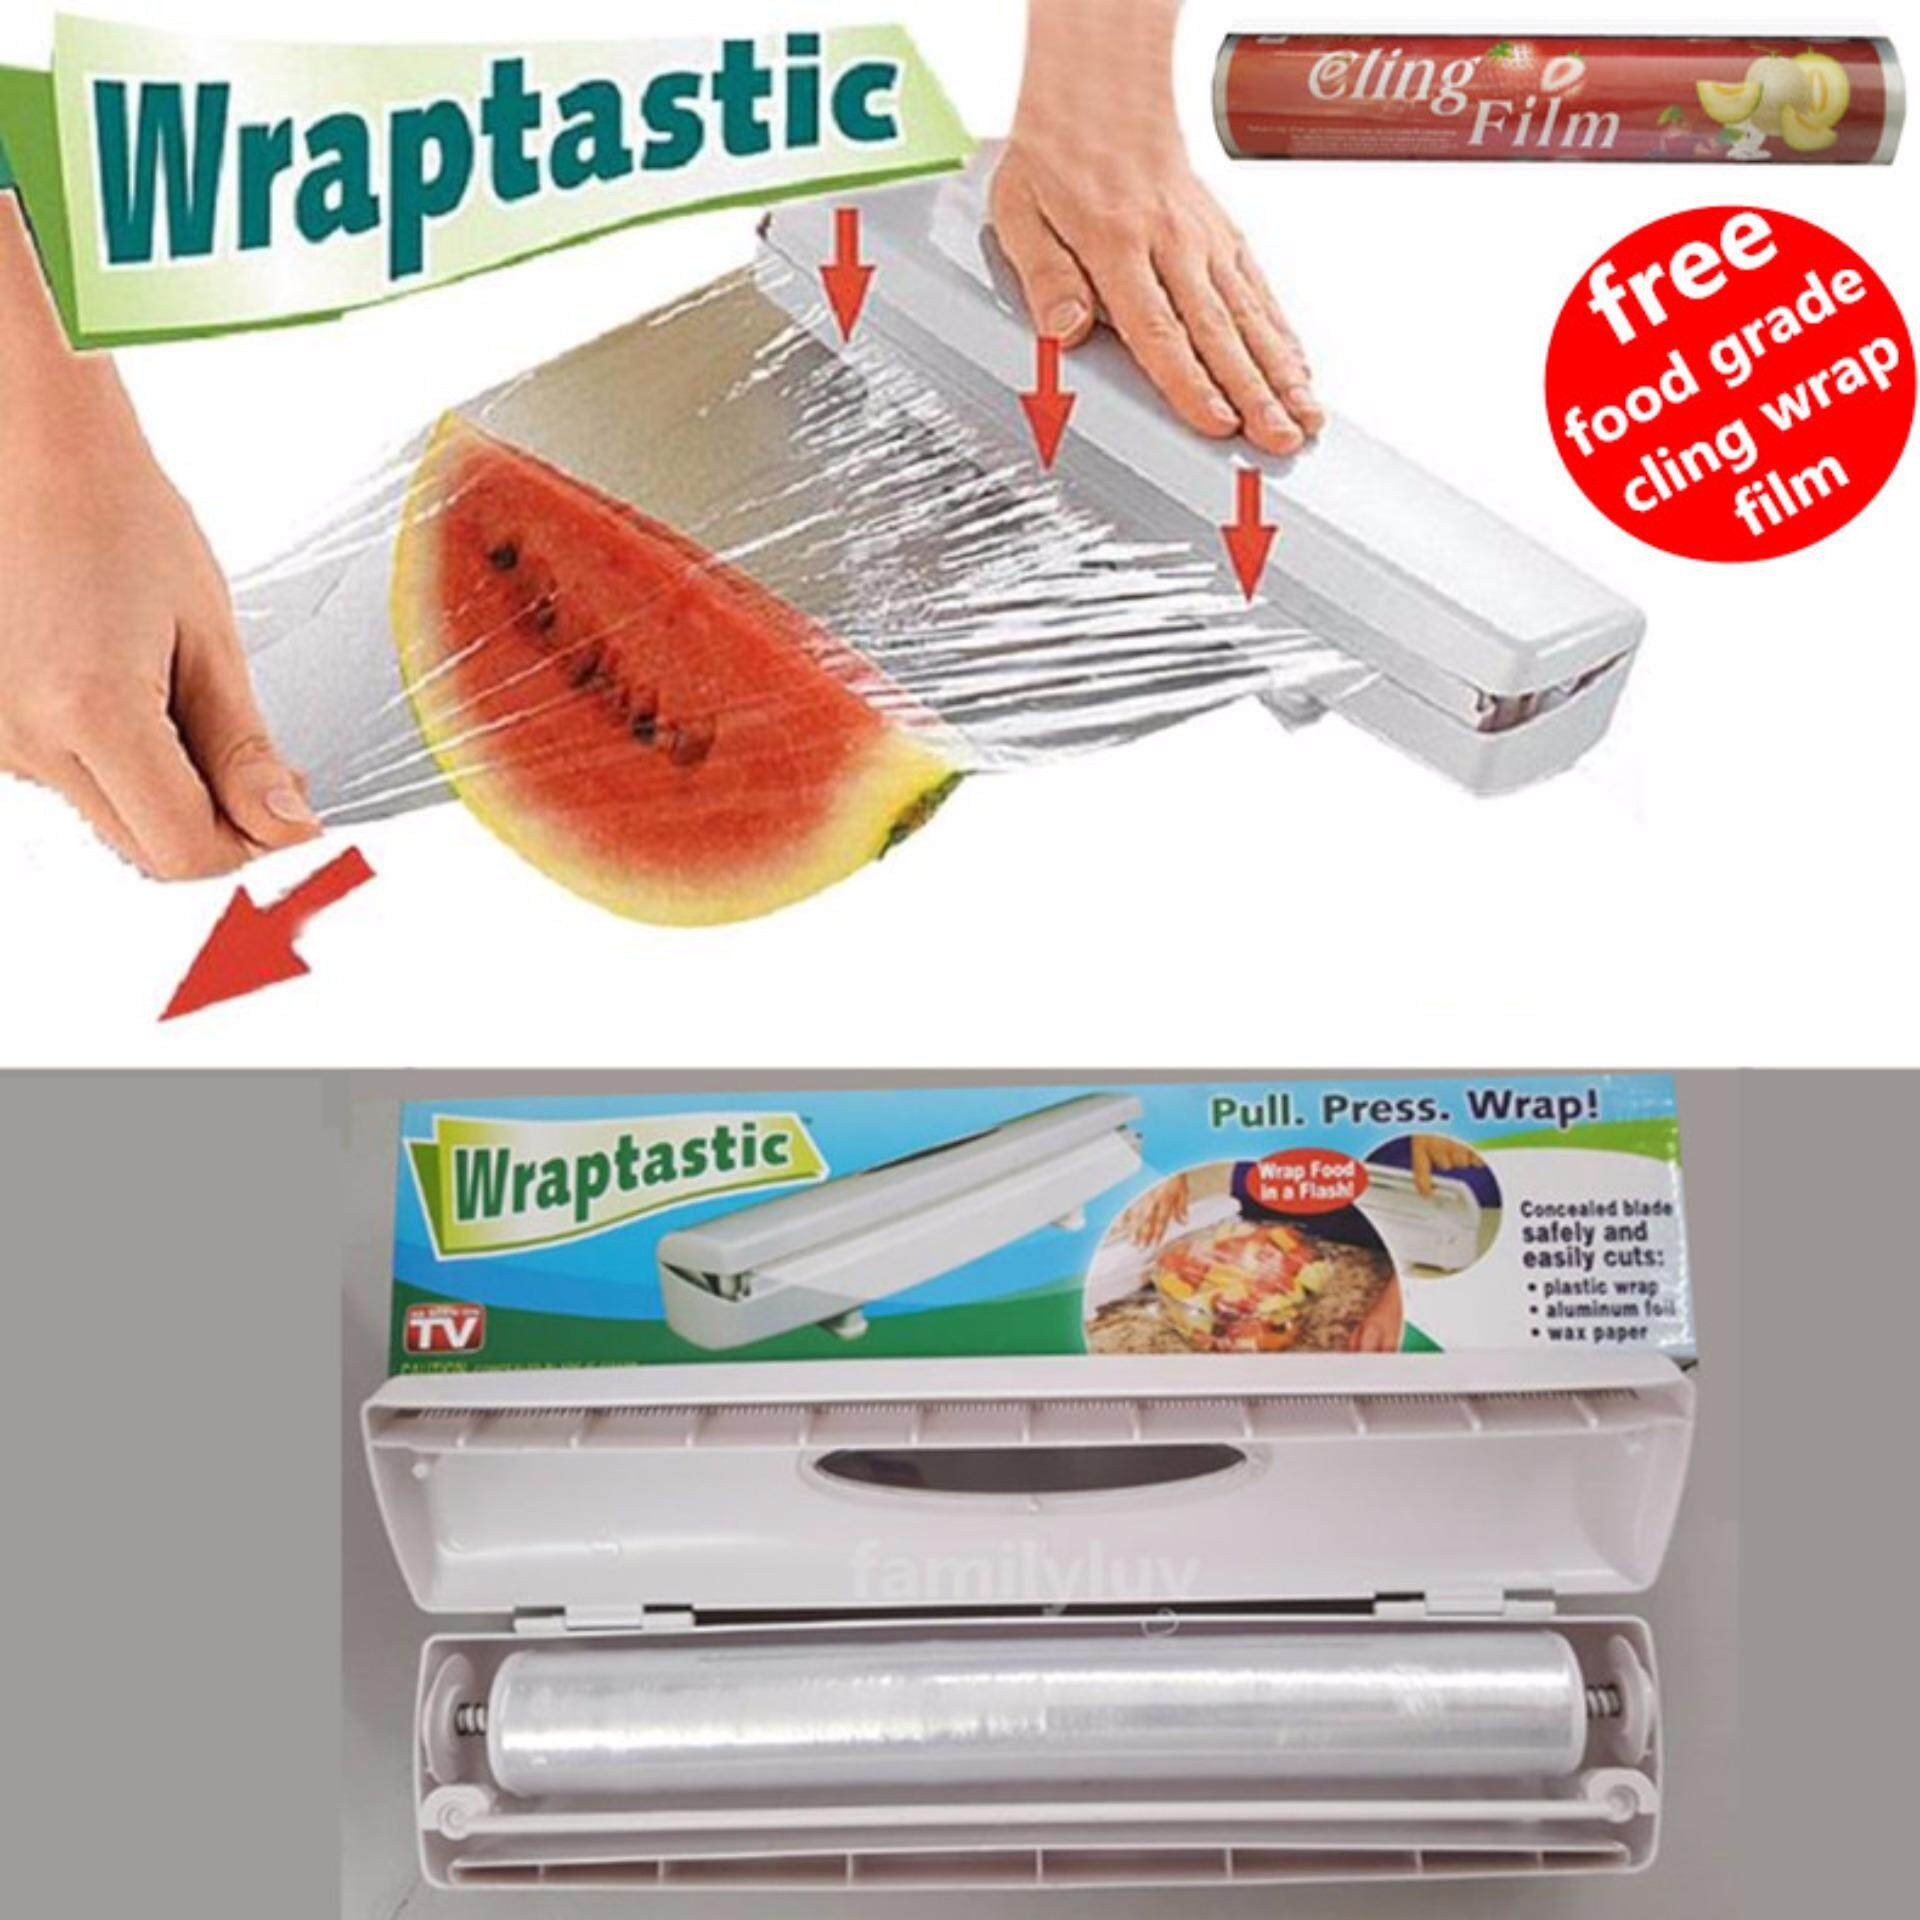 Wraptastic Dispenser Plastic wrap/Preservative film cutter For Foil or  Cling Wrap (Fast Neat Safety Cutting Hidden Blade)